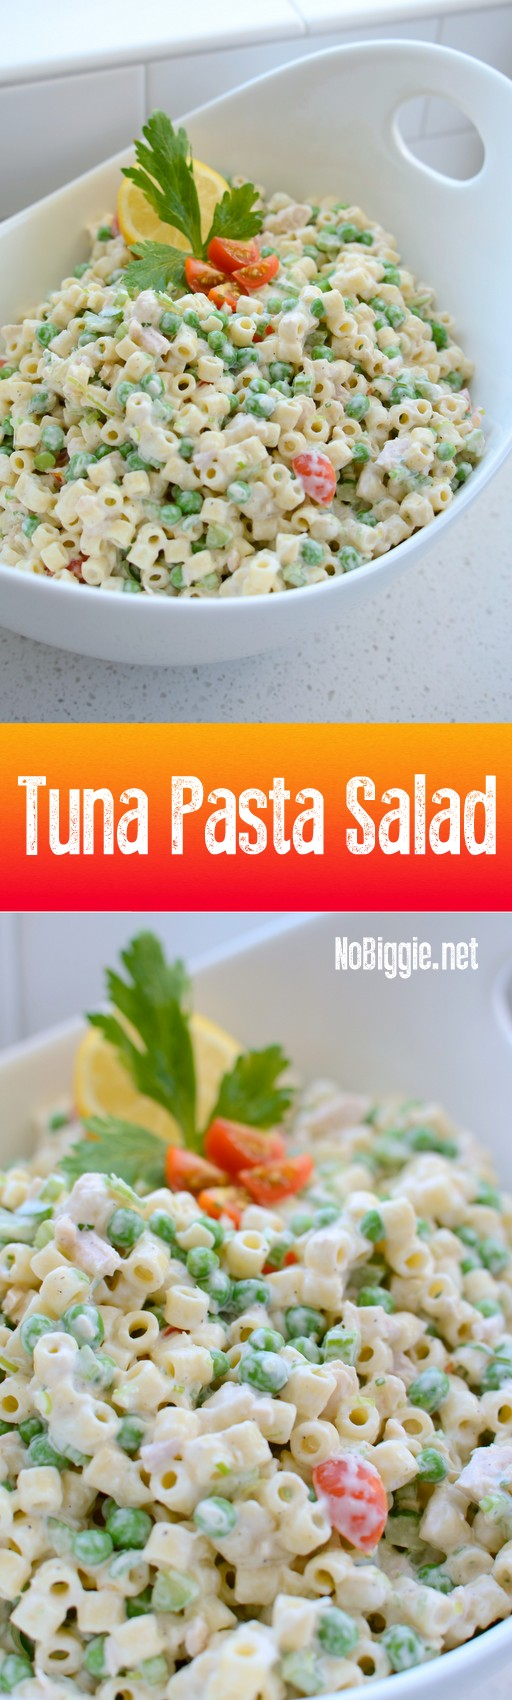 Tuna Pasta Salad - a delicious side salad you can bring to your next BBQ. #tunasalad #tunapastasalad #pastasalad #bbqfoods #summerbbqs #summermeals